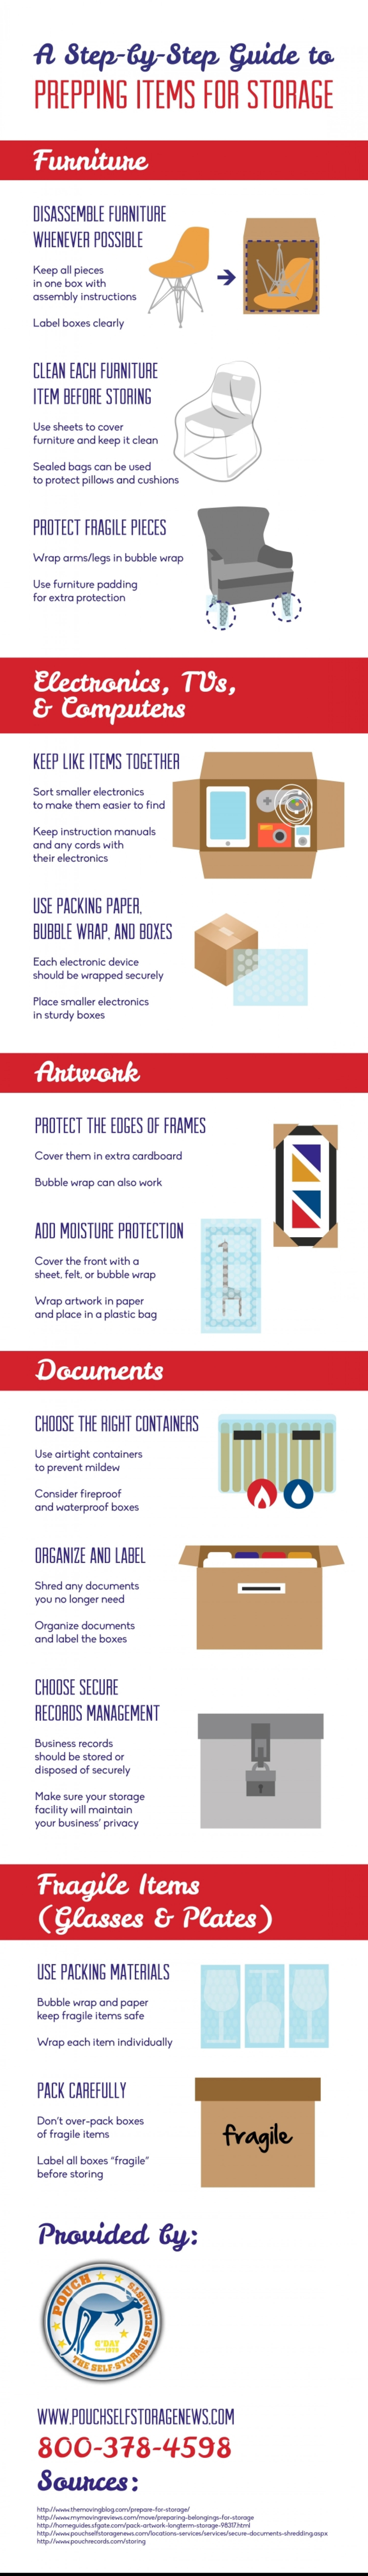 A STEP-BY-STEP GUIDE TO PREPPING ITEMS FOR STORAGE  Infographic